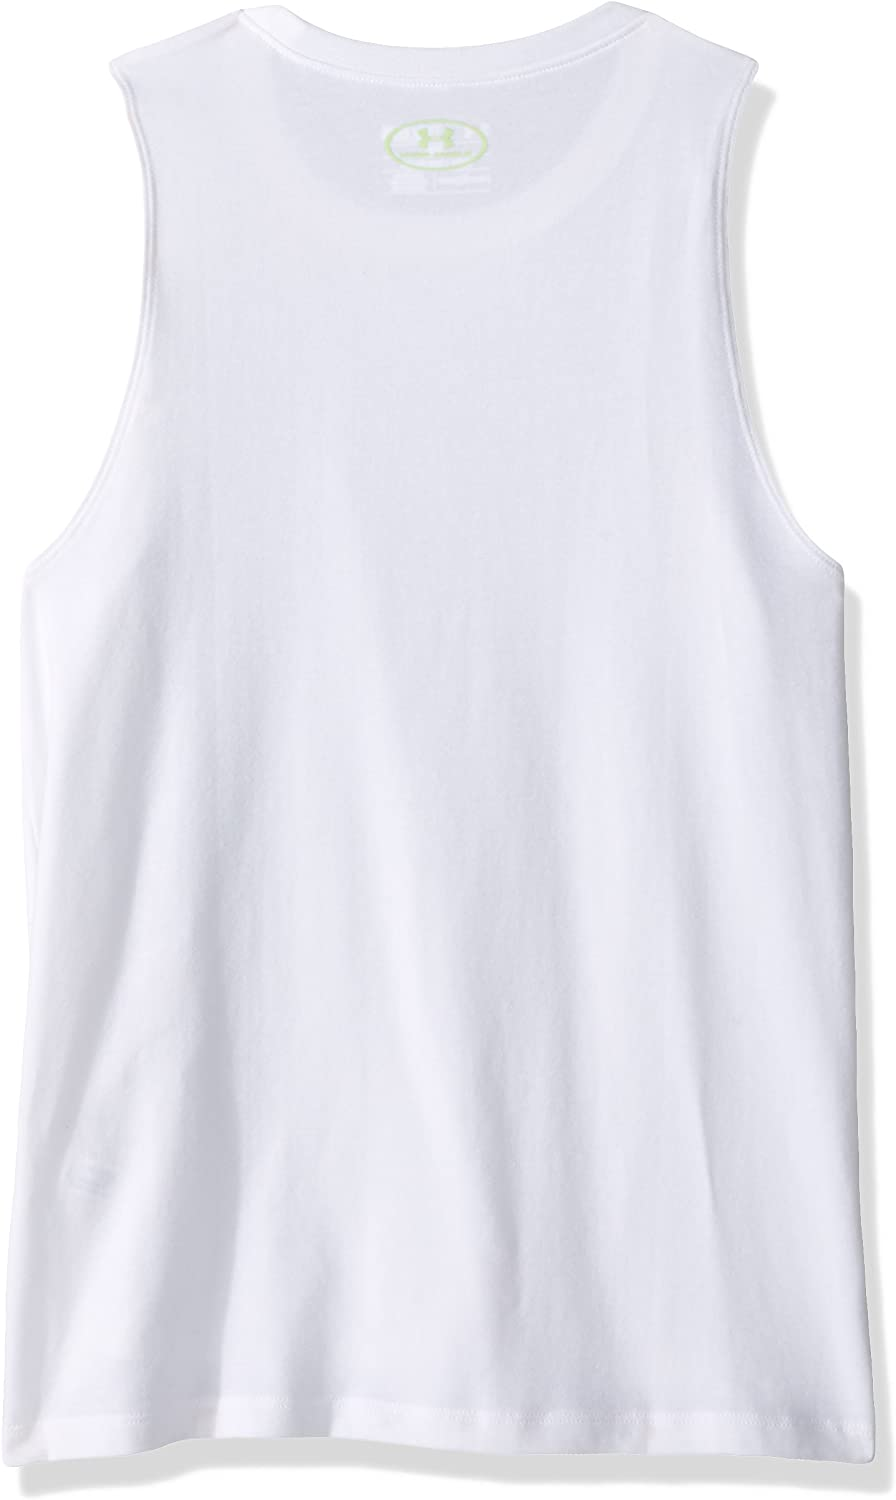 Under Armour Girls Step It Up Muscle Tank Top